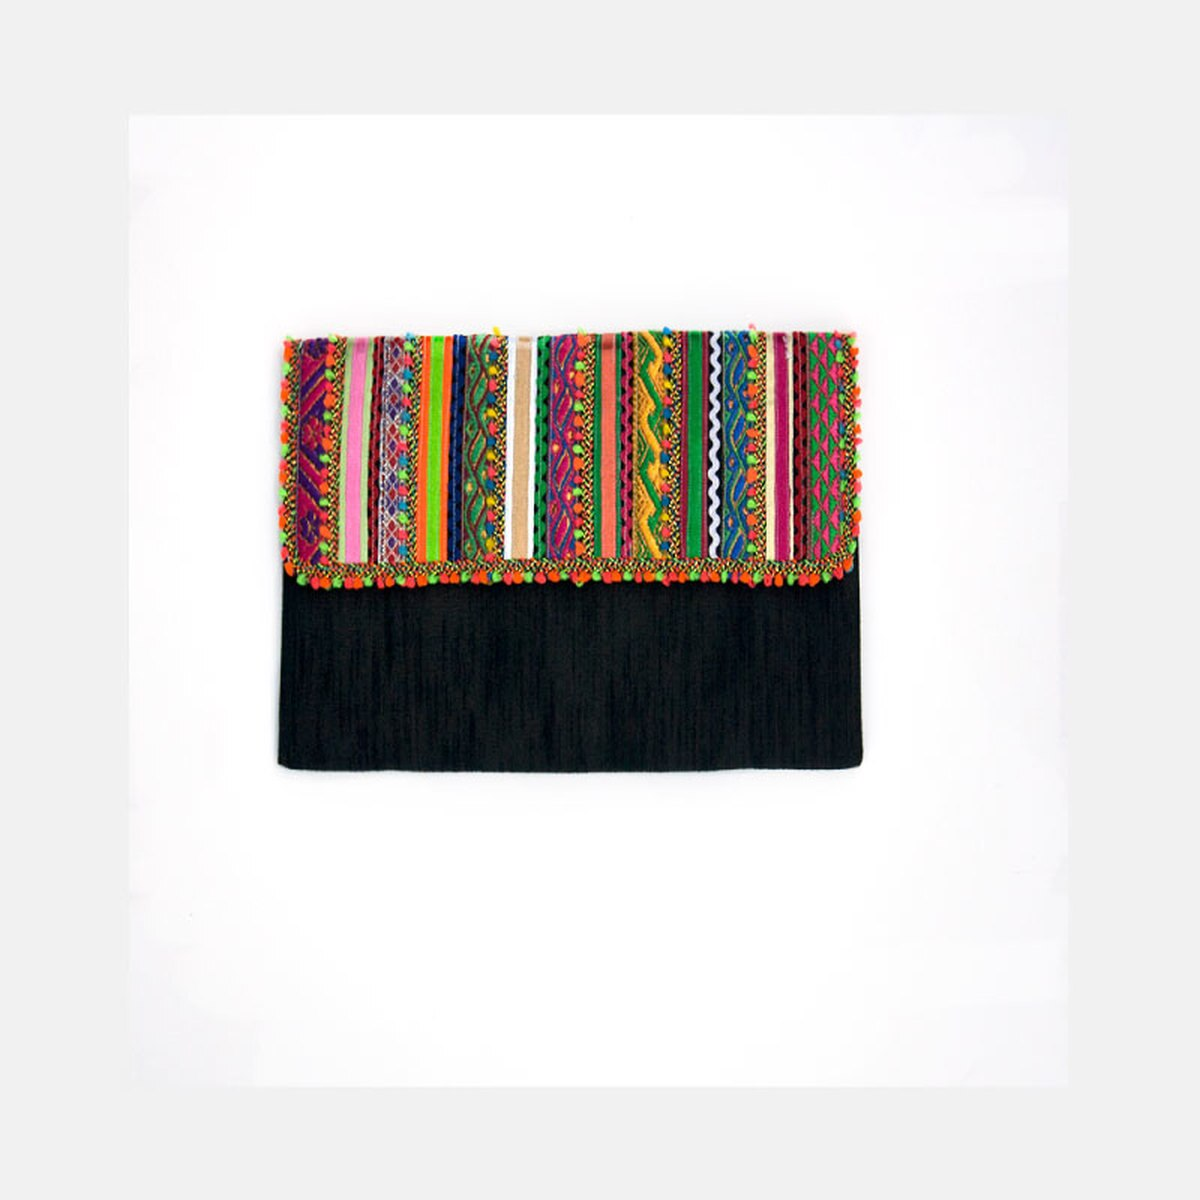 Rabari Flat Clutch Purse - Black from Siyana London